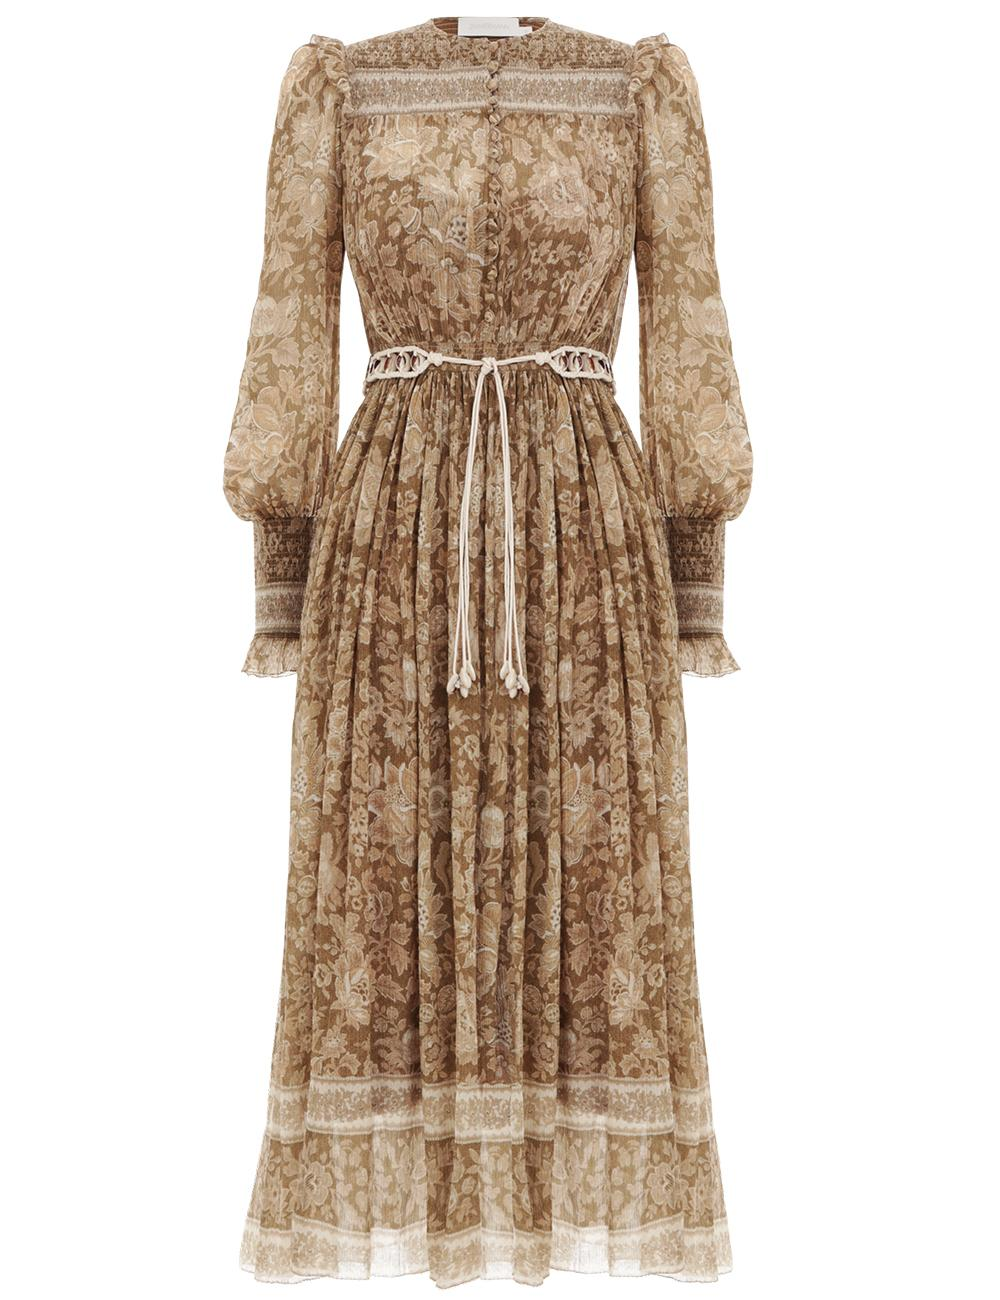 4a0badc842 Zimmermann. Women s Veneto Shirred Paisley Dress